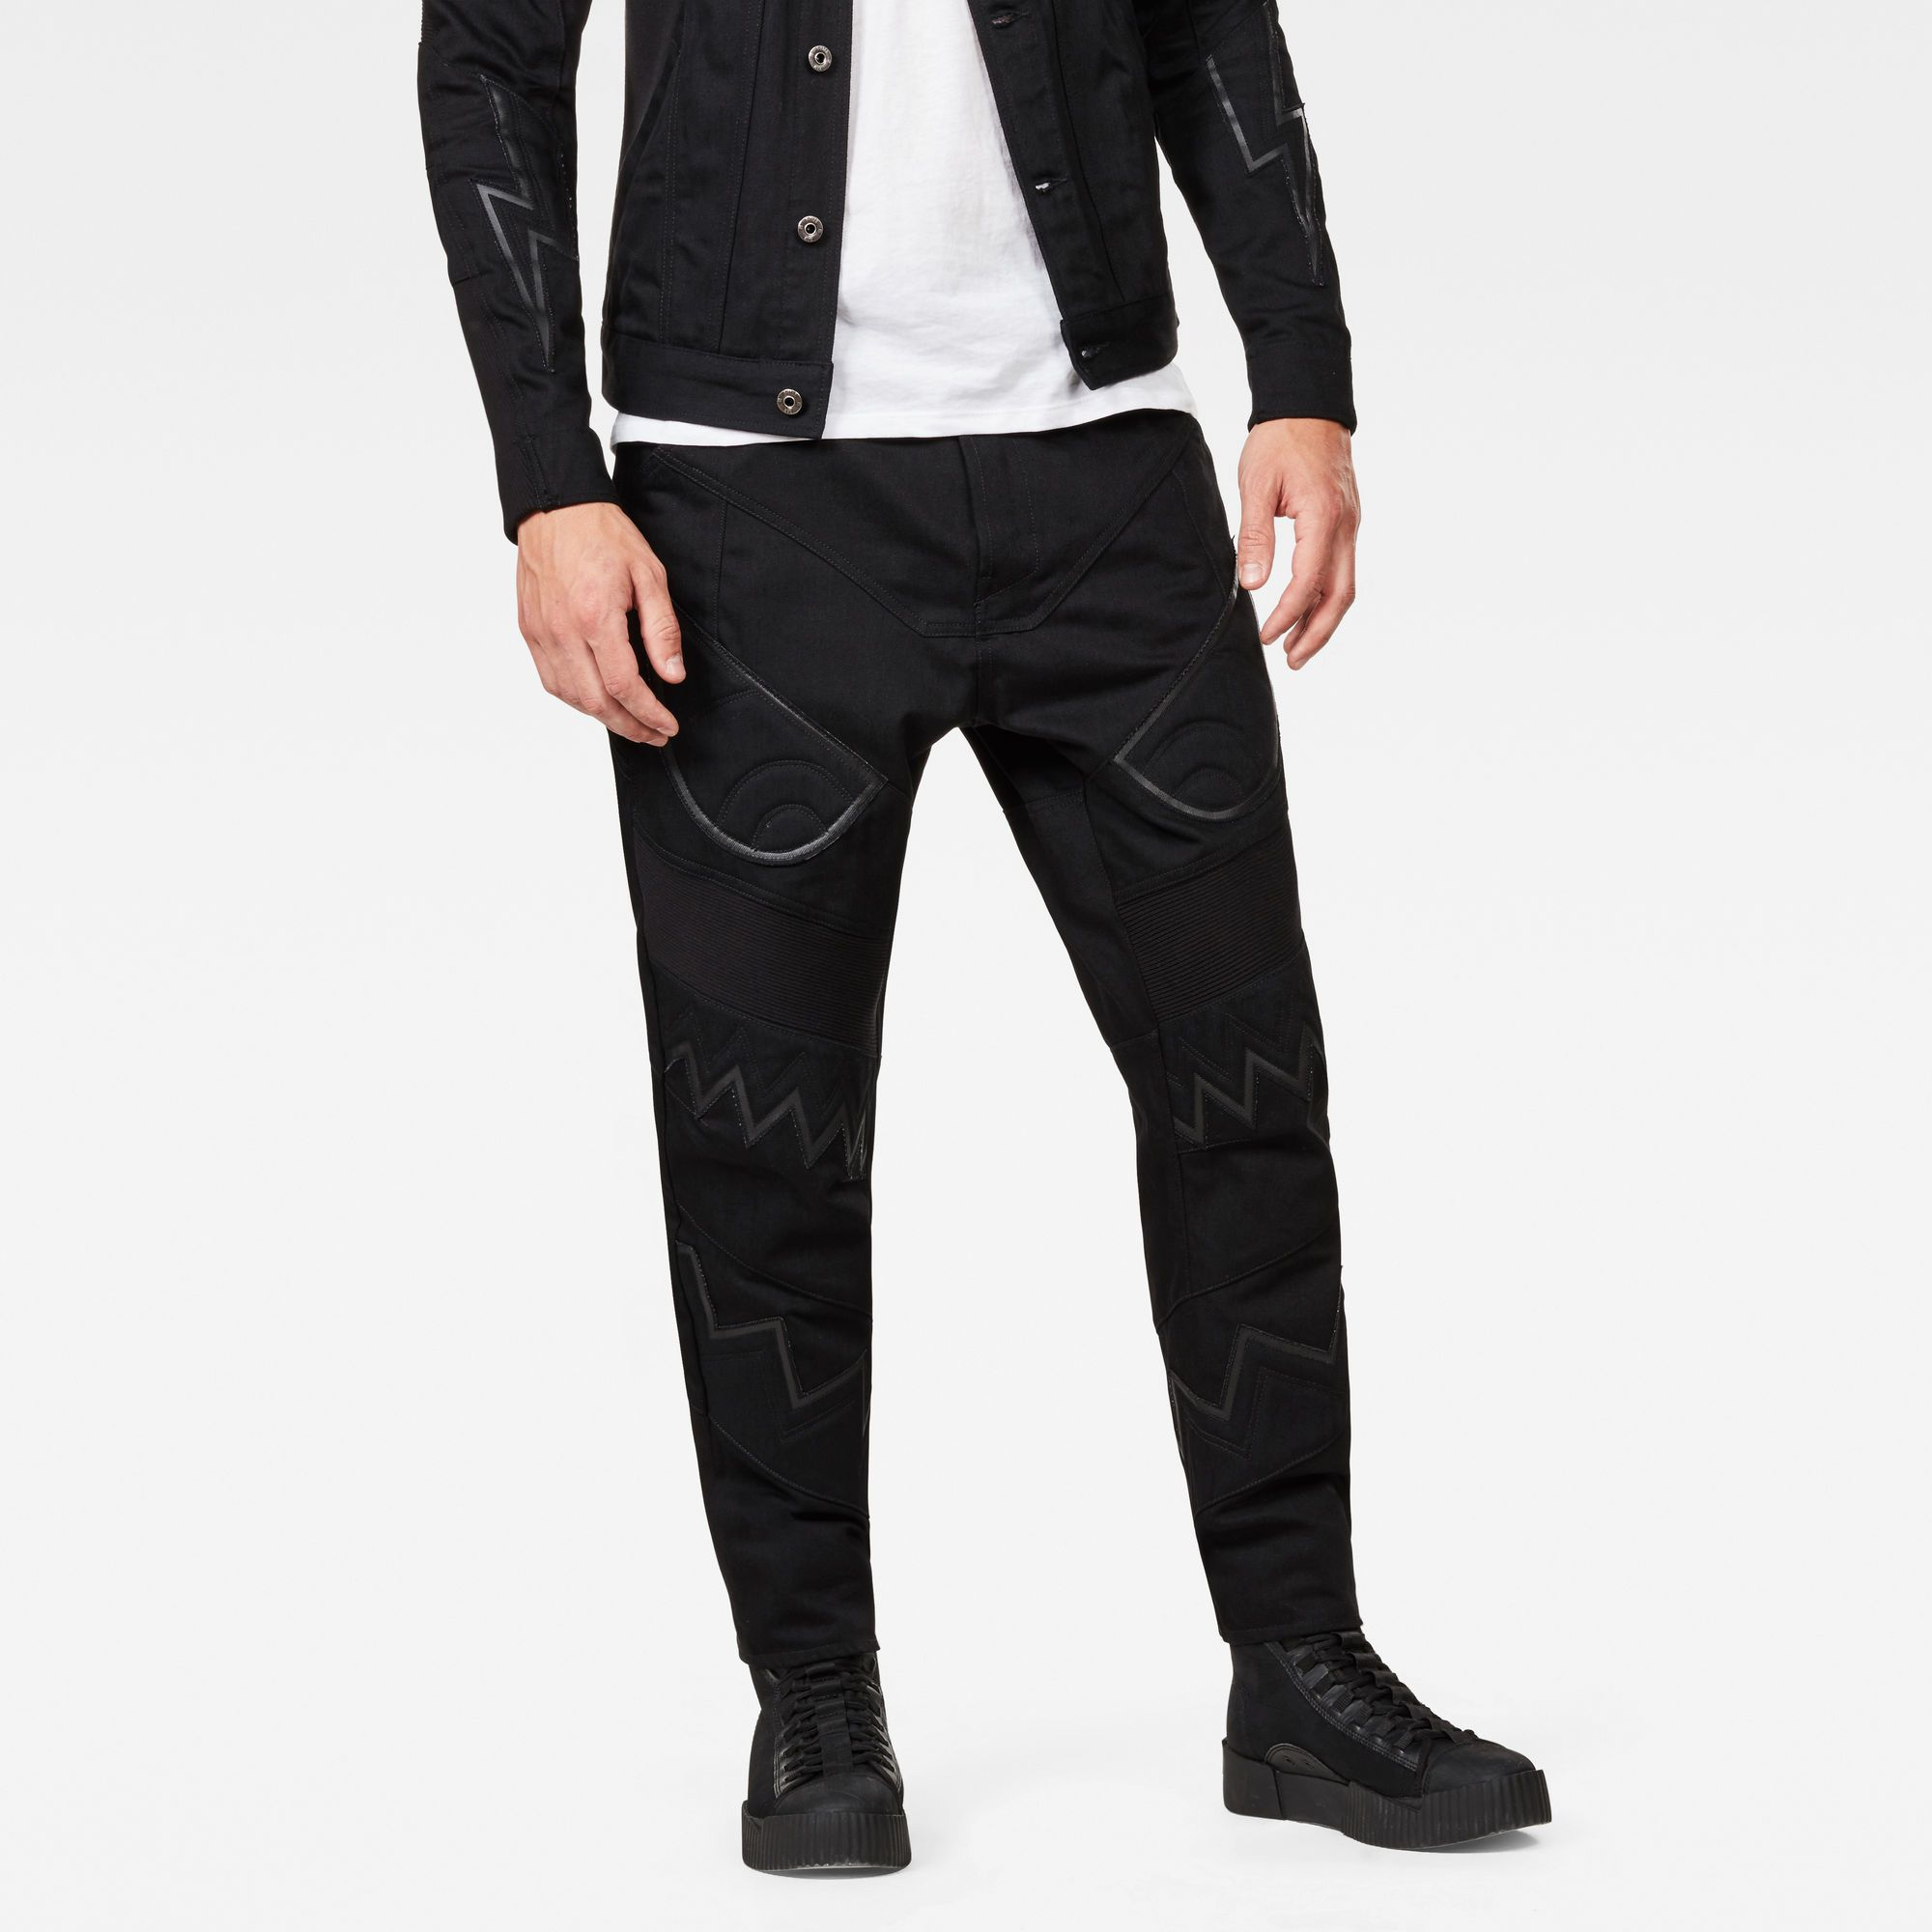 G-Star RAW Motac-X Deconstructed Relaxed Straight Moto Jeans